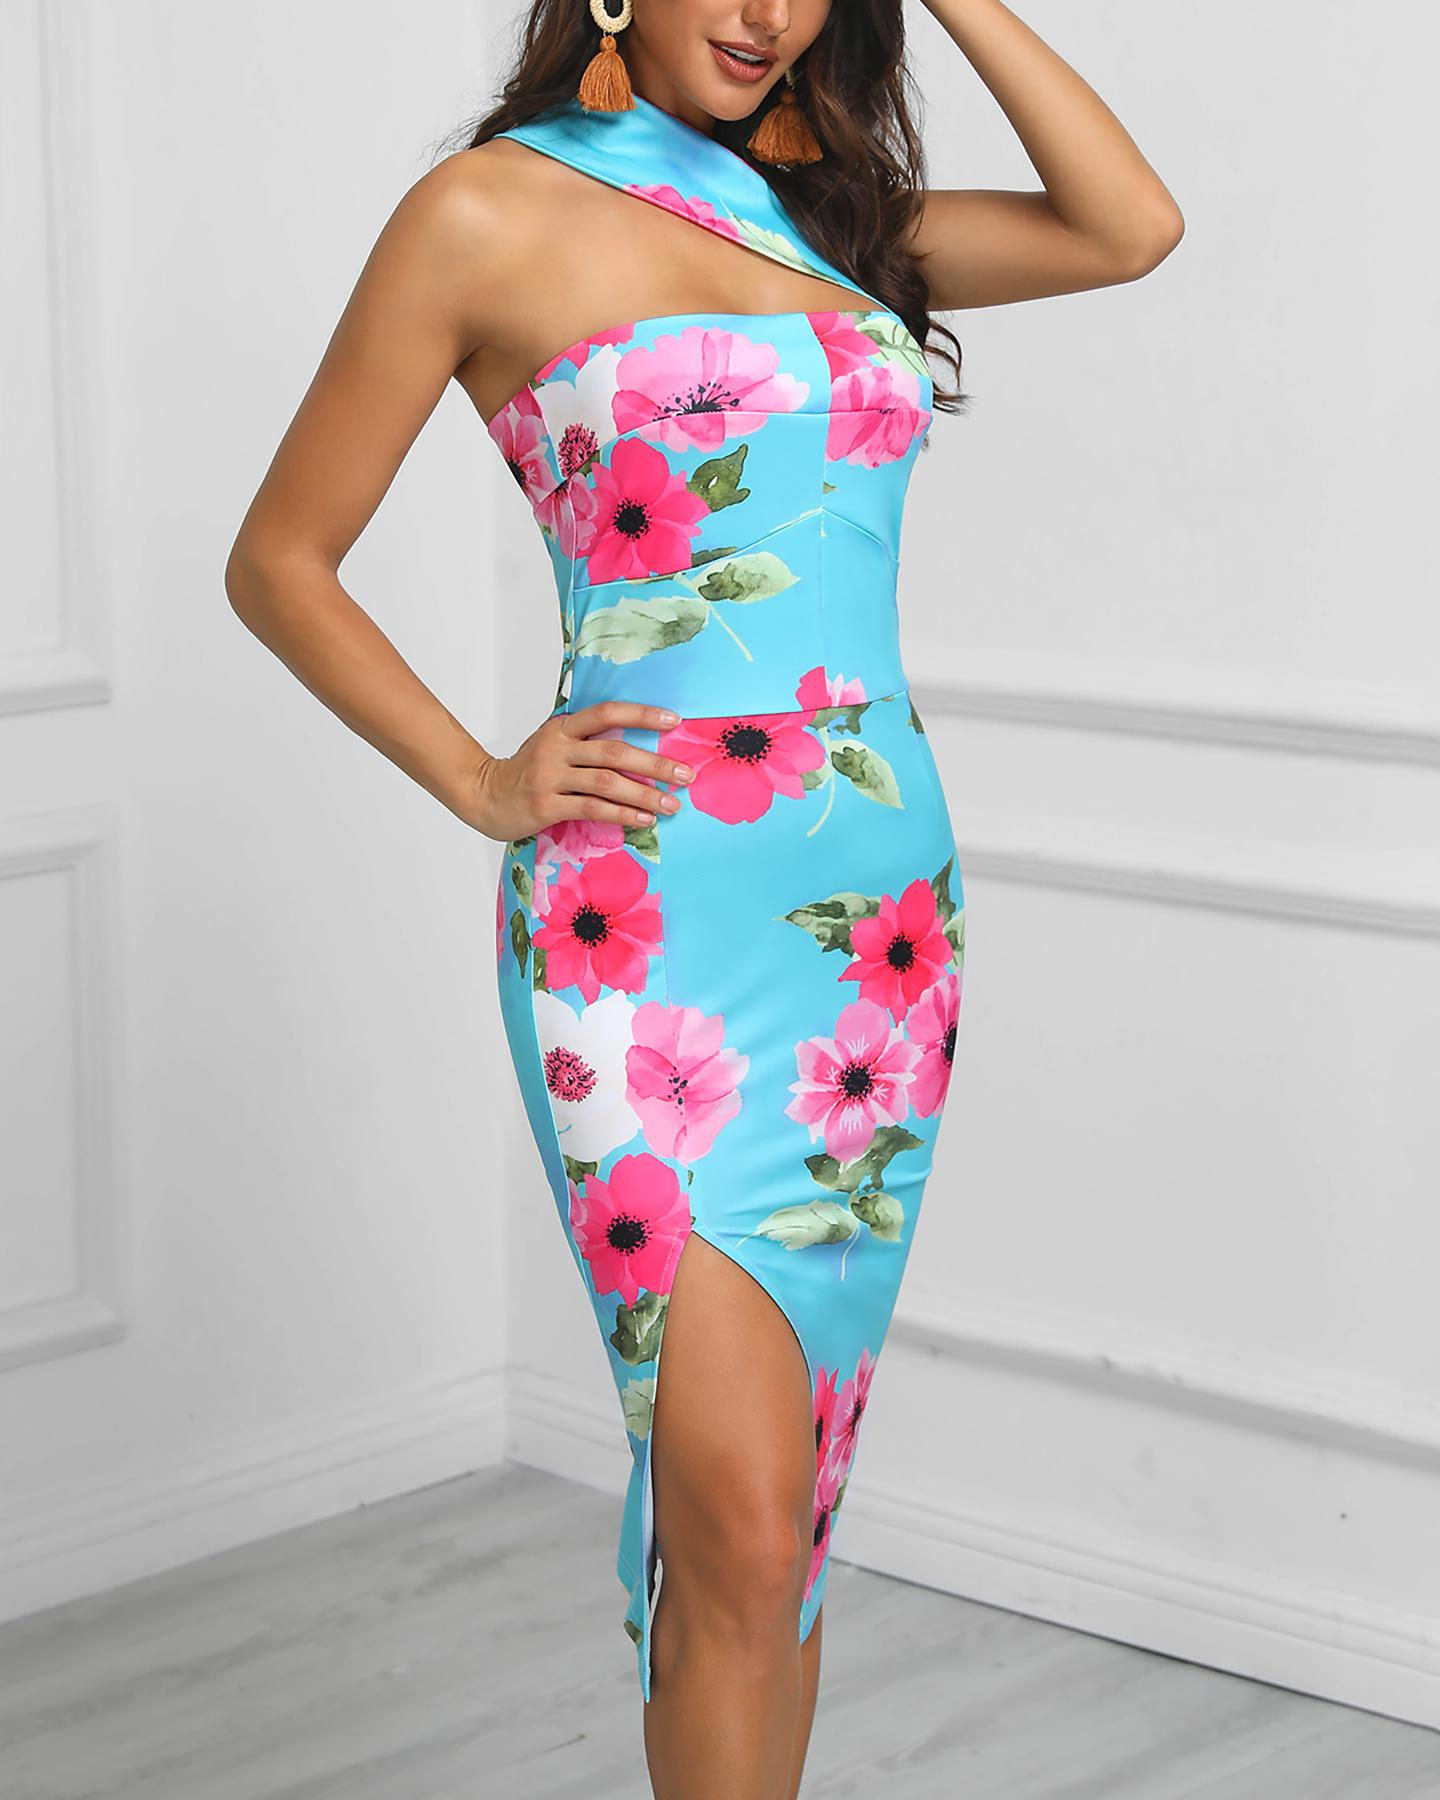 chicme / One Shoulder Cutout Floral Print Bodycon Dress